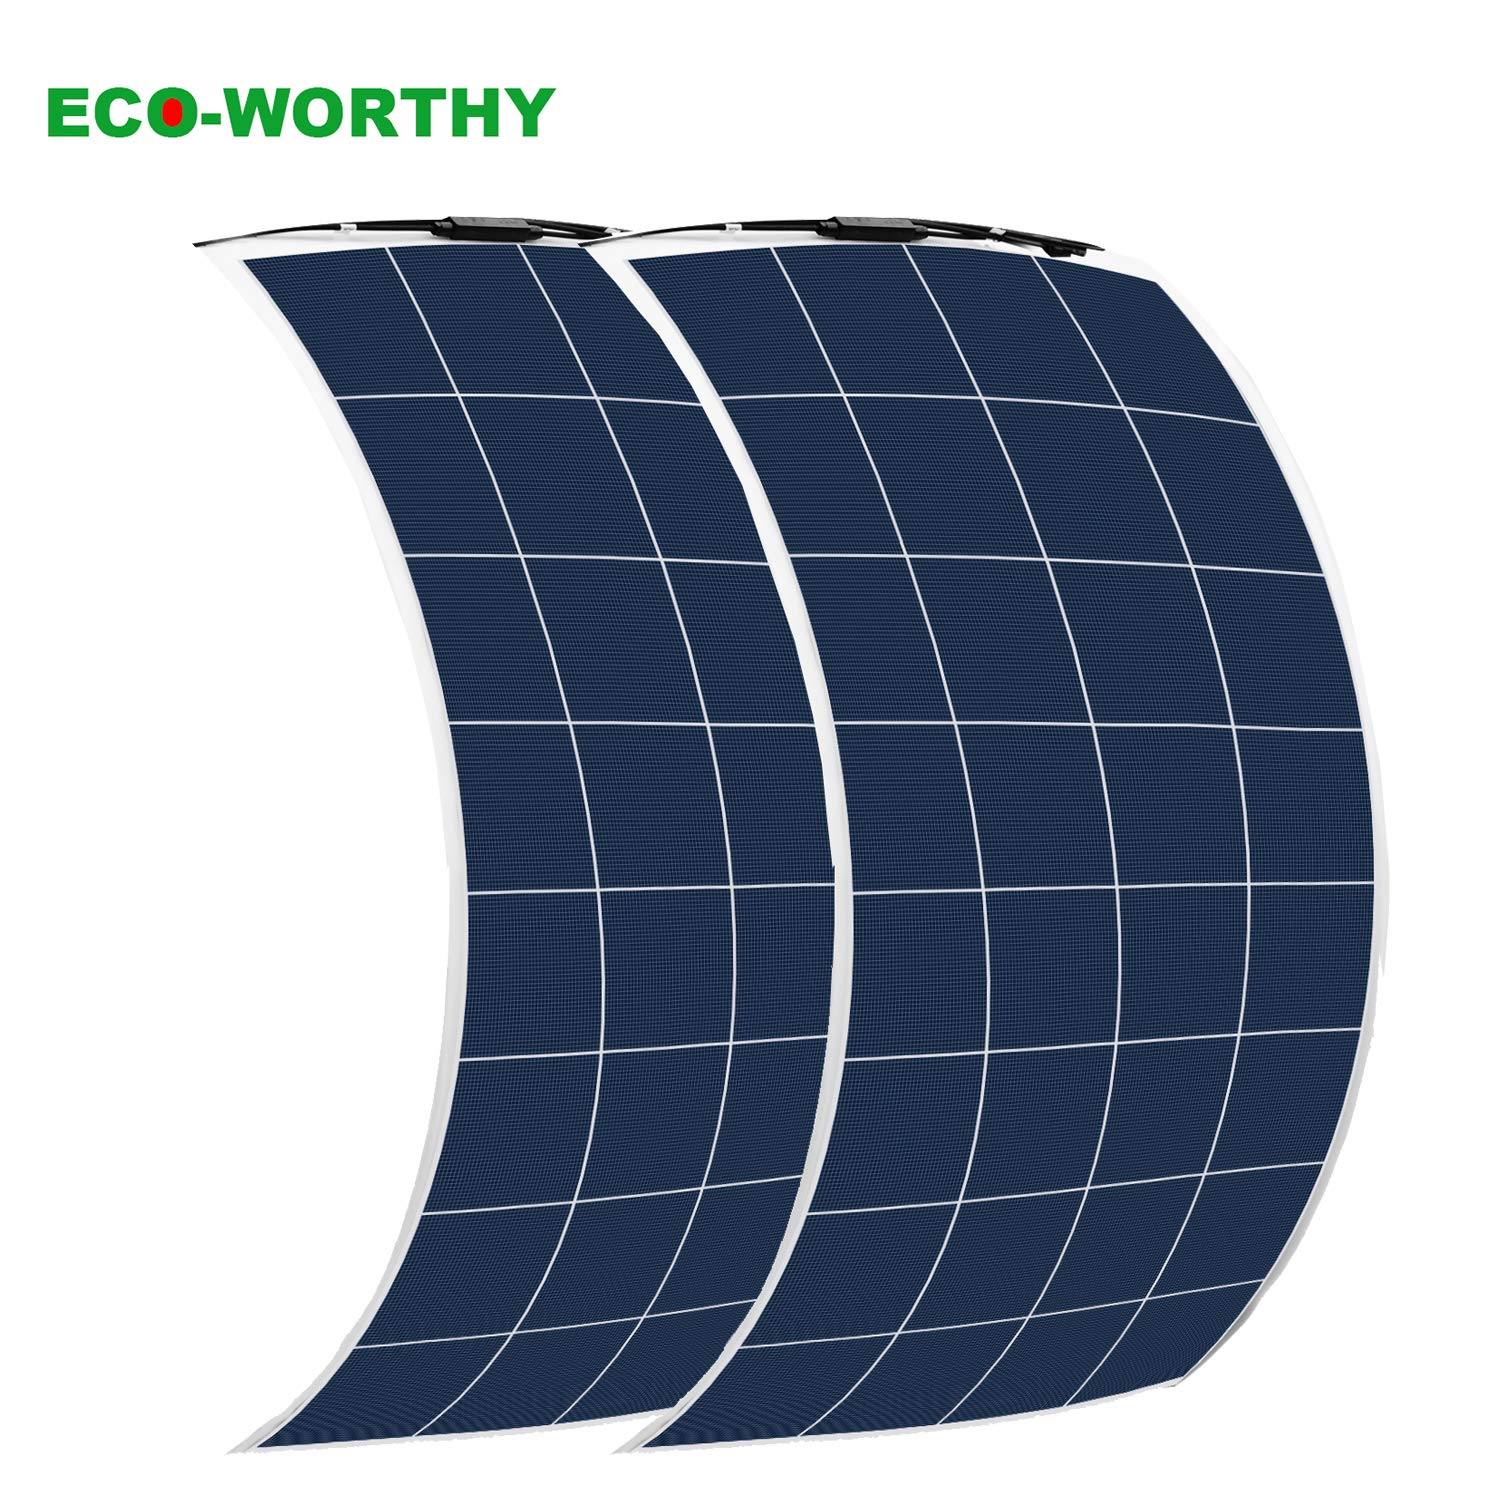 ECO-WORTHY 2Pcs 150W Bendable PV Solar Panel Module for RV, Trucks, Camping(300W Total) by ECO-WORTHY